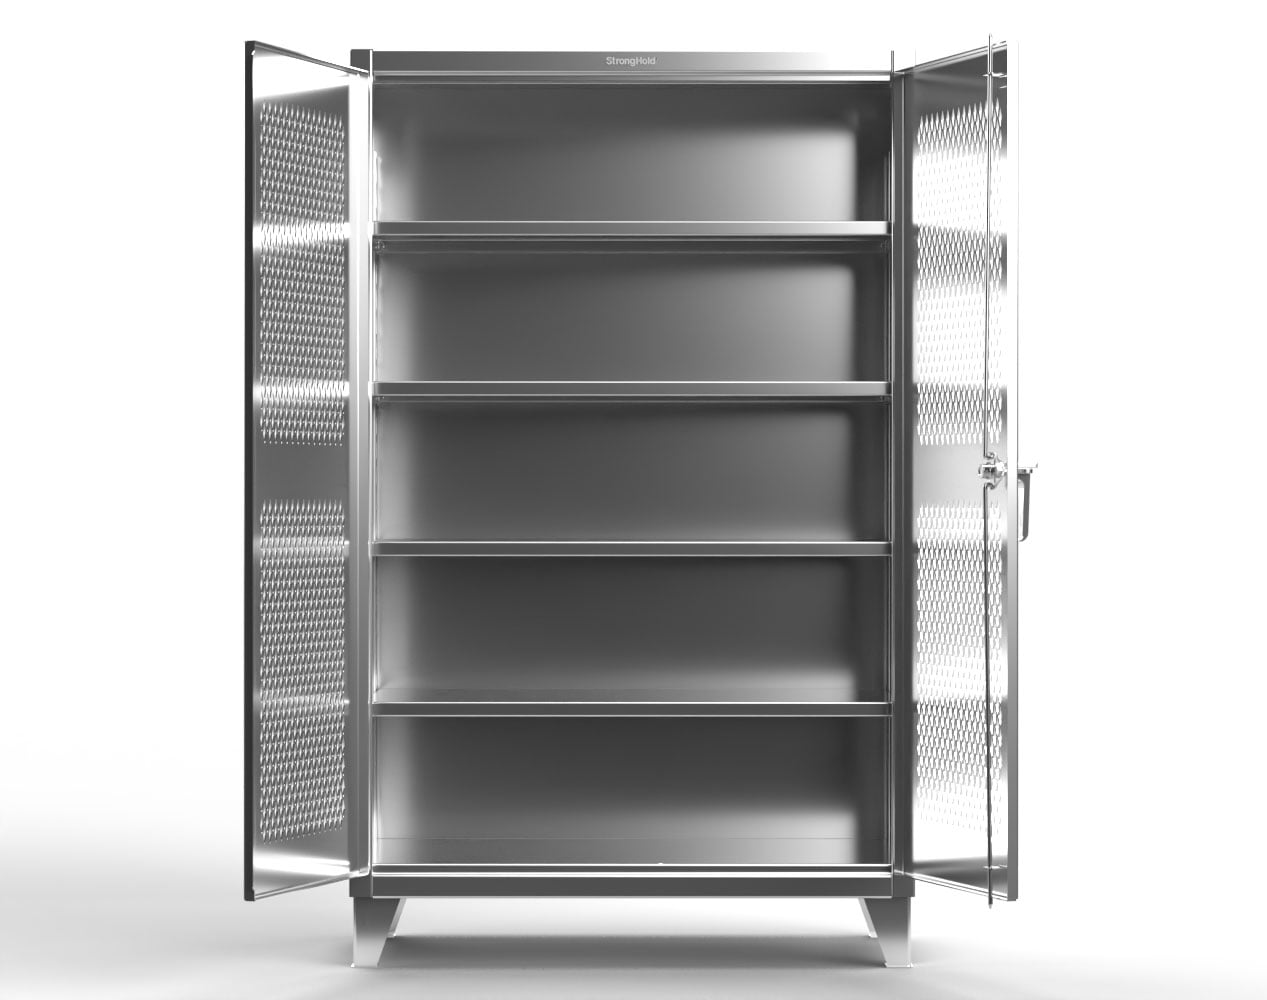 Extra Heavy Duty 12 GA Stainless Steel Cabinet with Ventilated Doors, 4 Shelves – 60 In. W x 24 In. D x 78 In. H